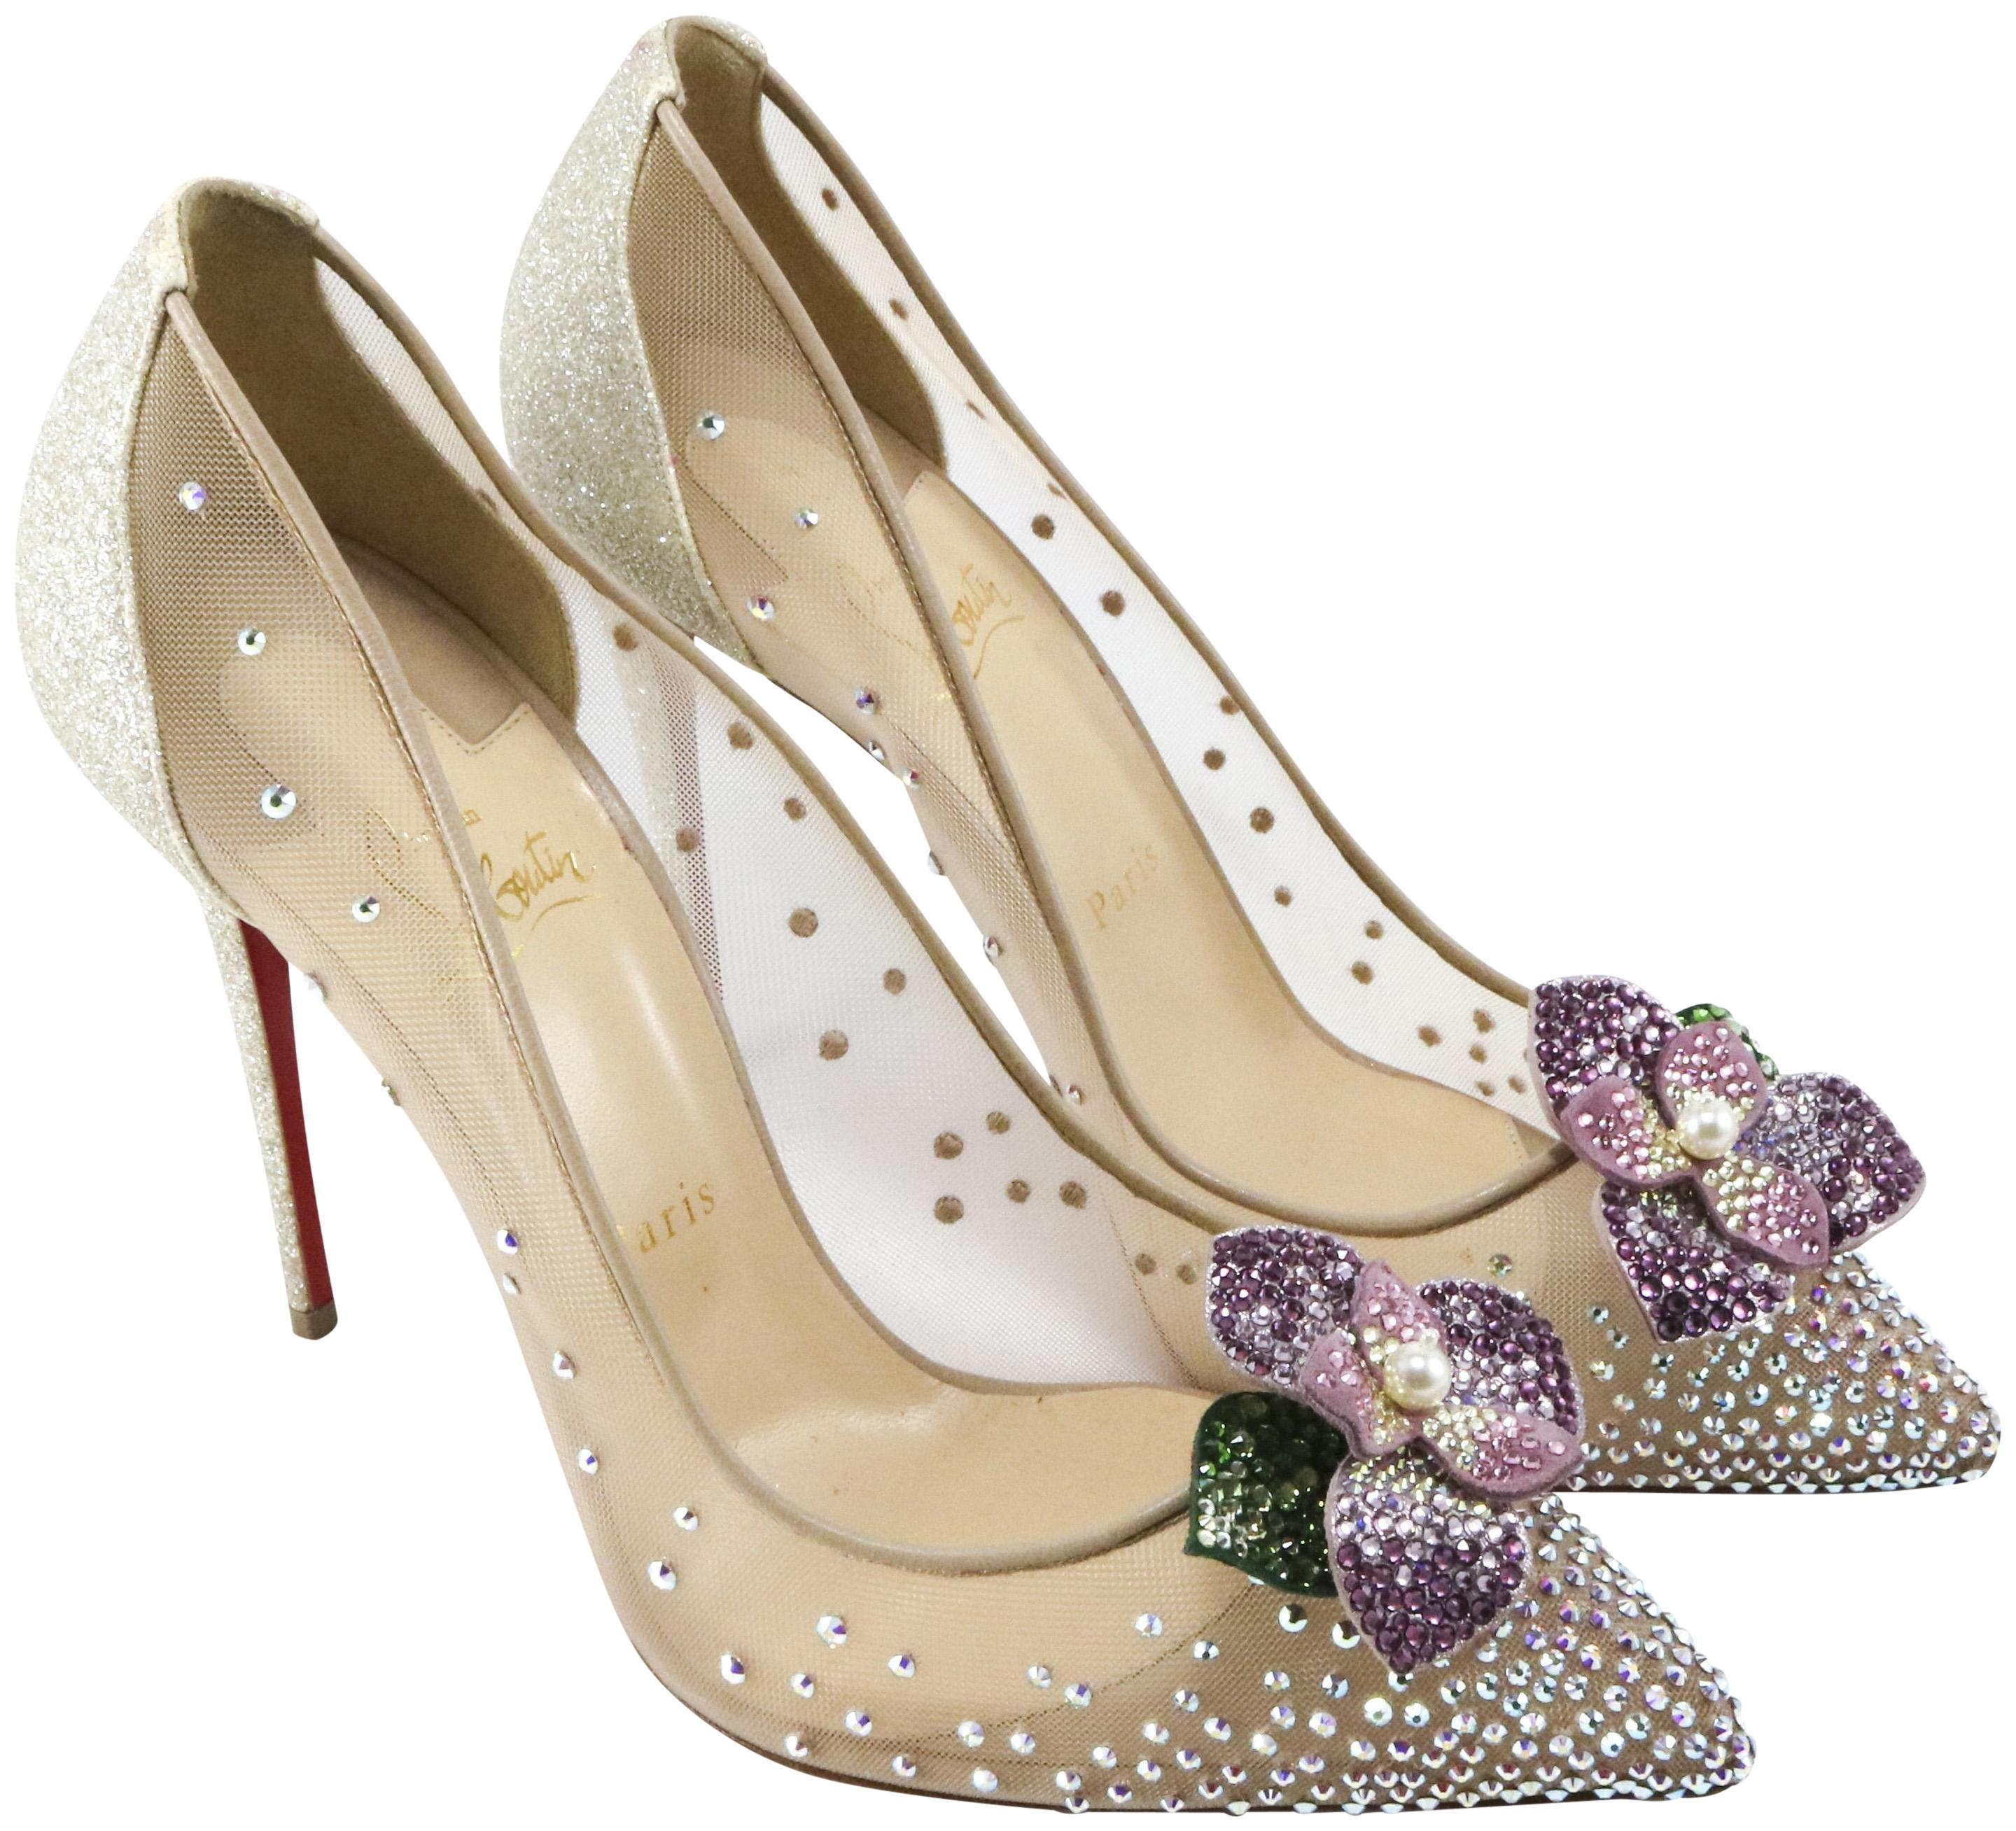 e7b6fc36efc low price christian louboutin jeweled shoes wedding 4e768 45723